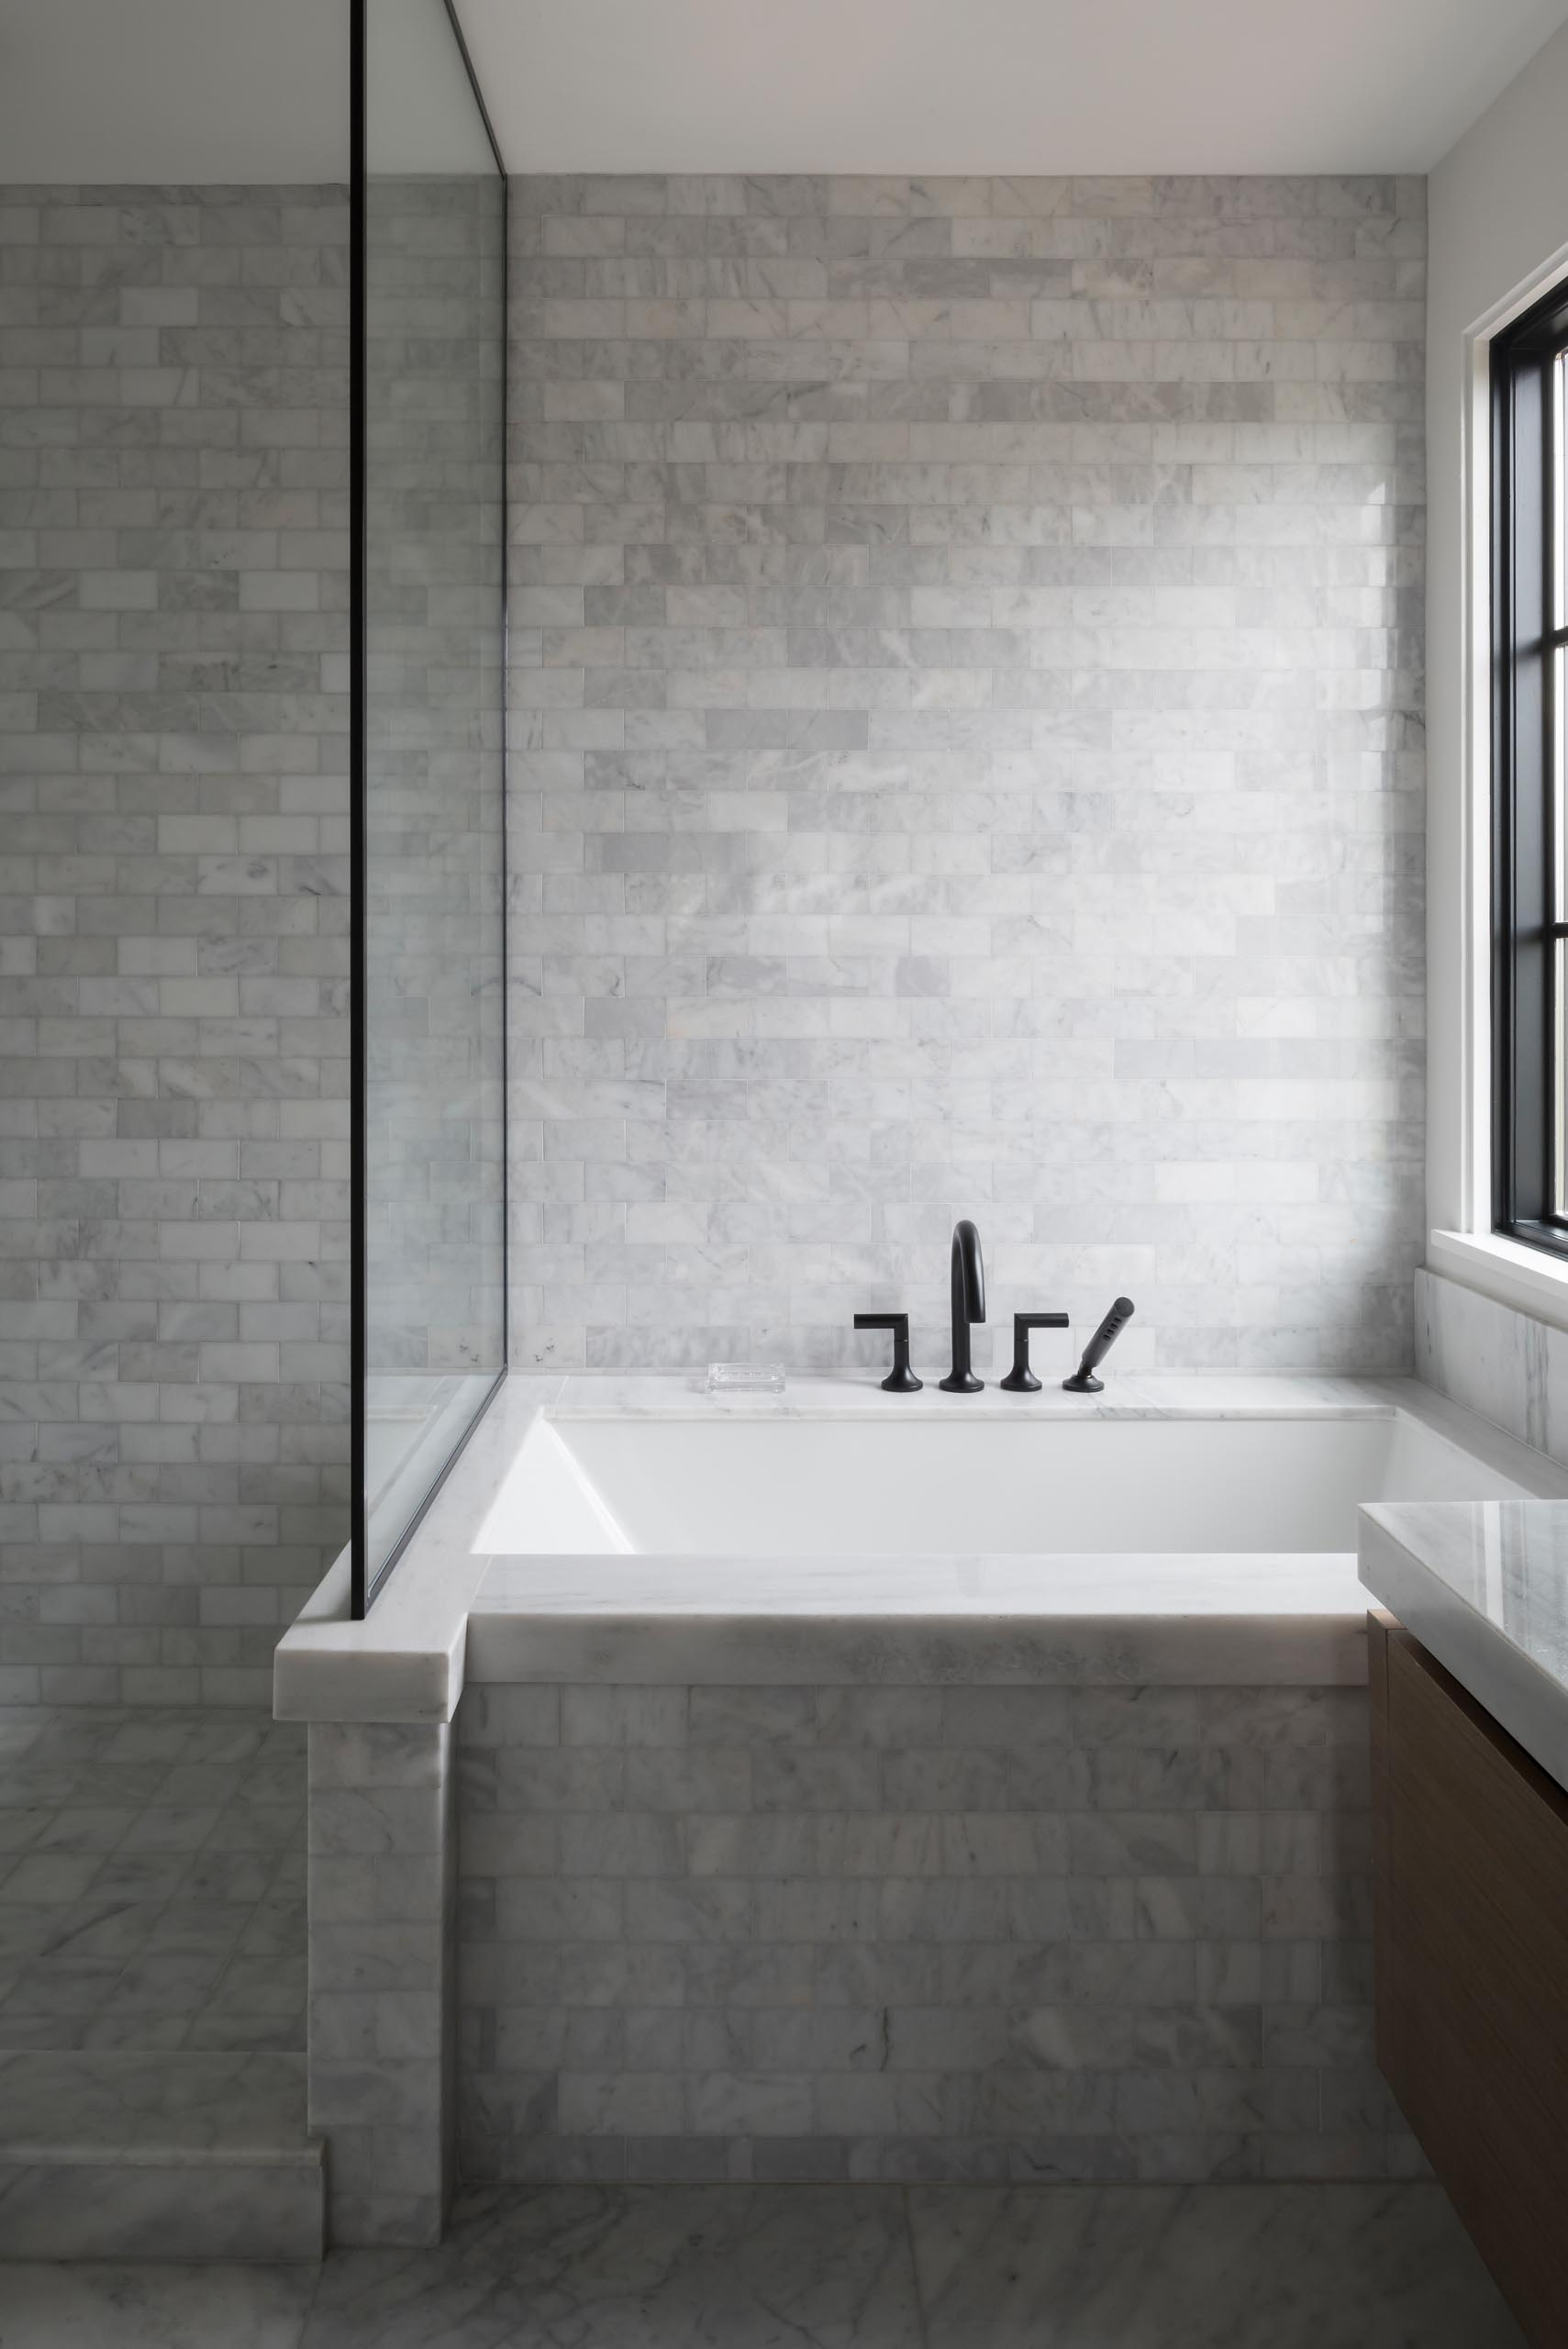 A modern bathroom with marble tiles, a built-in bathtub, and black framed glass shower screen.